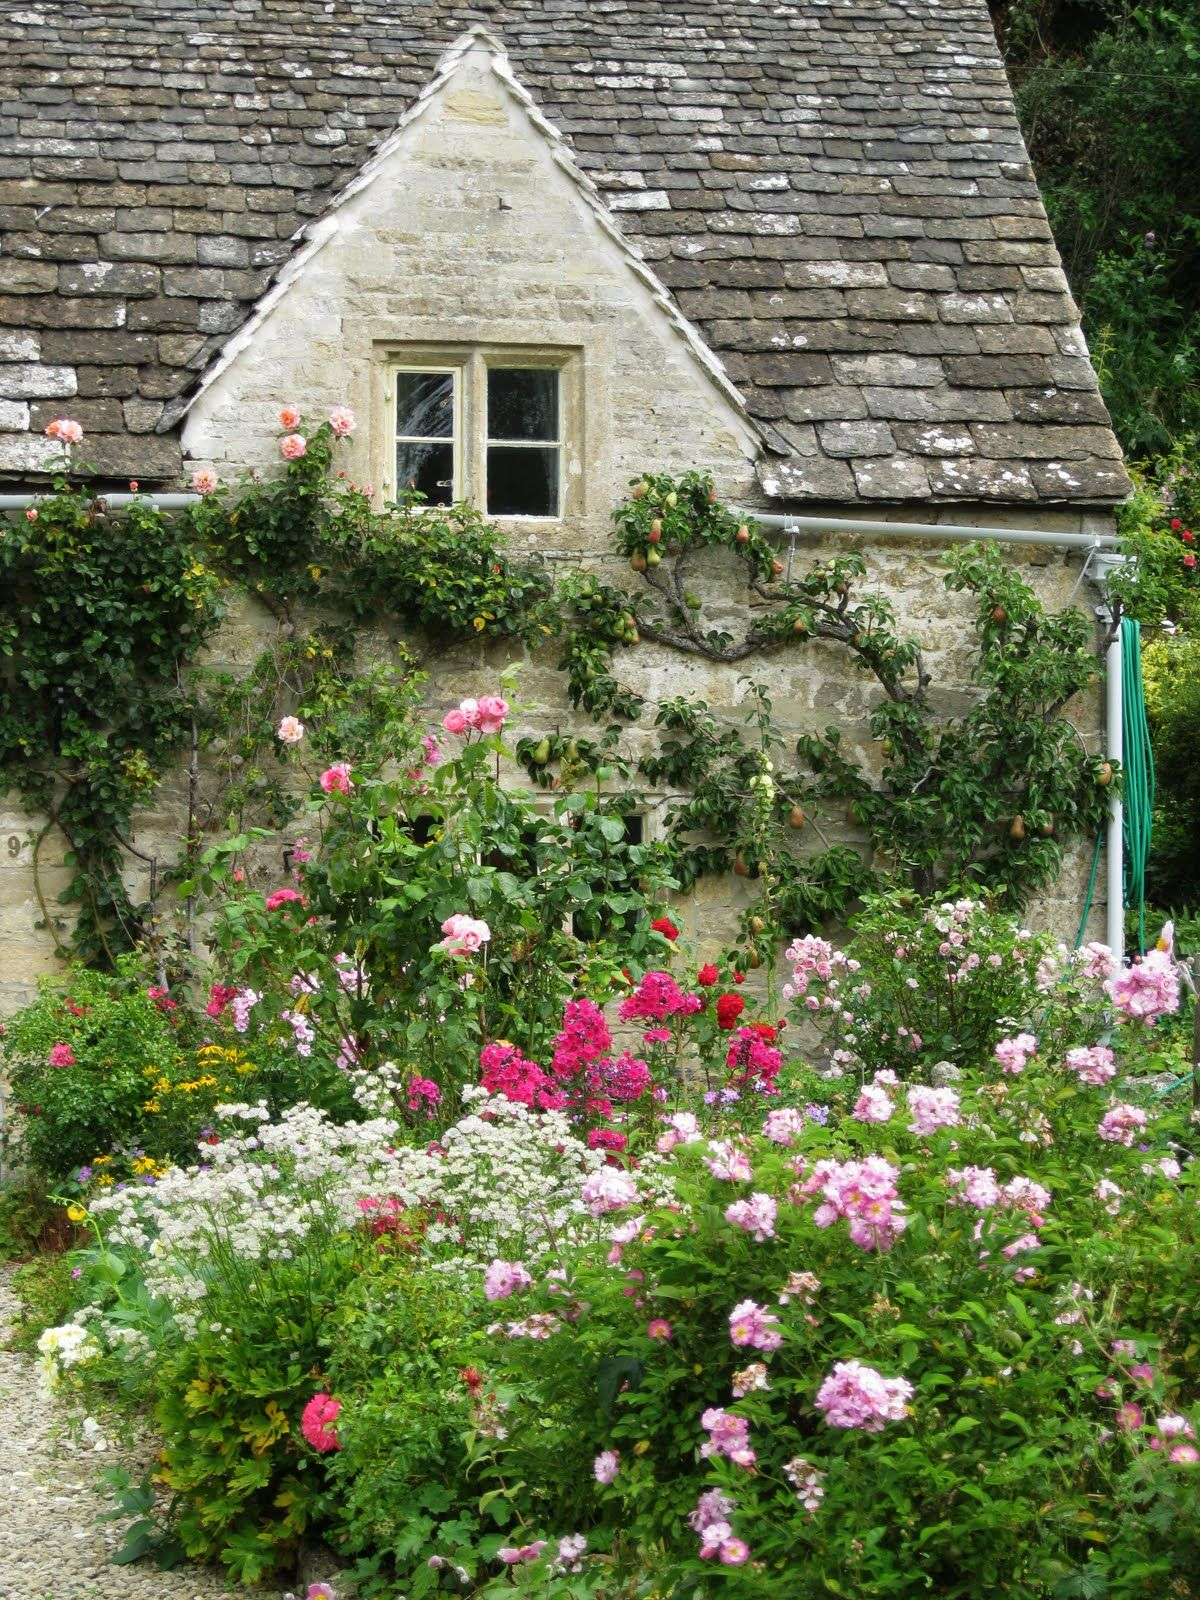 Garden style the english cottage garden where the old - Find This Pin And More On English Garden